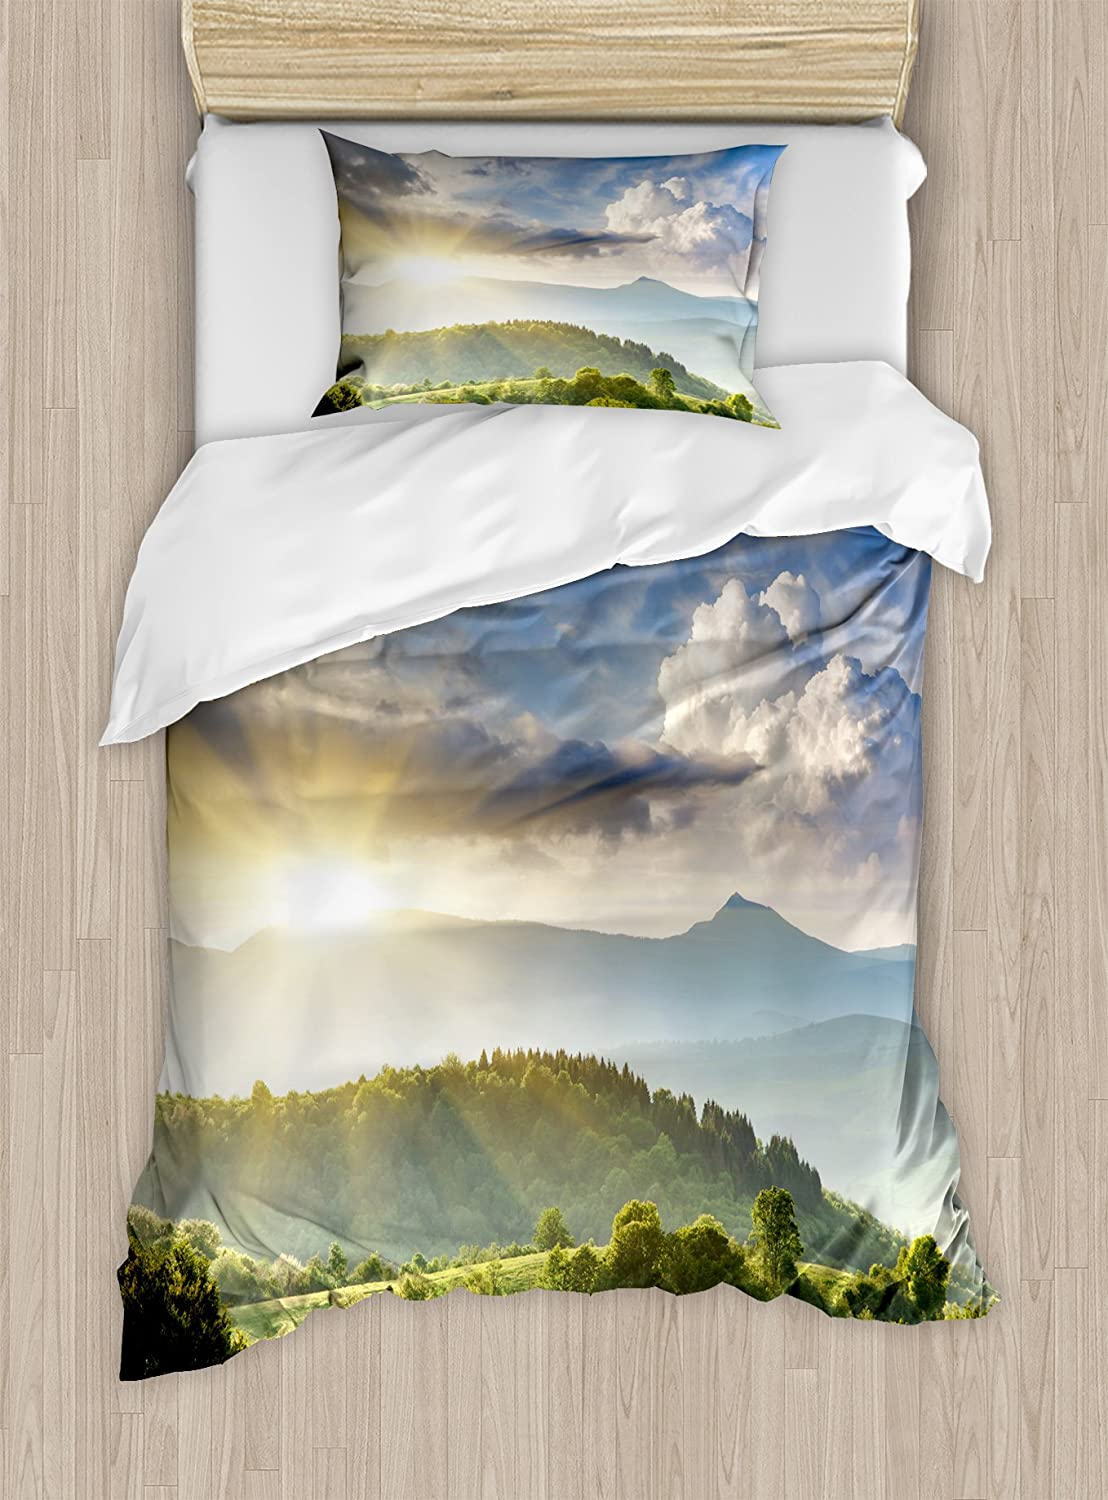 Ambesonne Nature Duvet Cover Set, Rising Sun Clouds Over Forest Hill Woodland Idyllic Countryside View, Decorative 2 Piece Bedding Set with 1 Pillow Sham, Twin Size, Blue Green